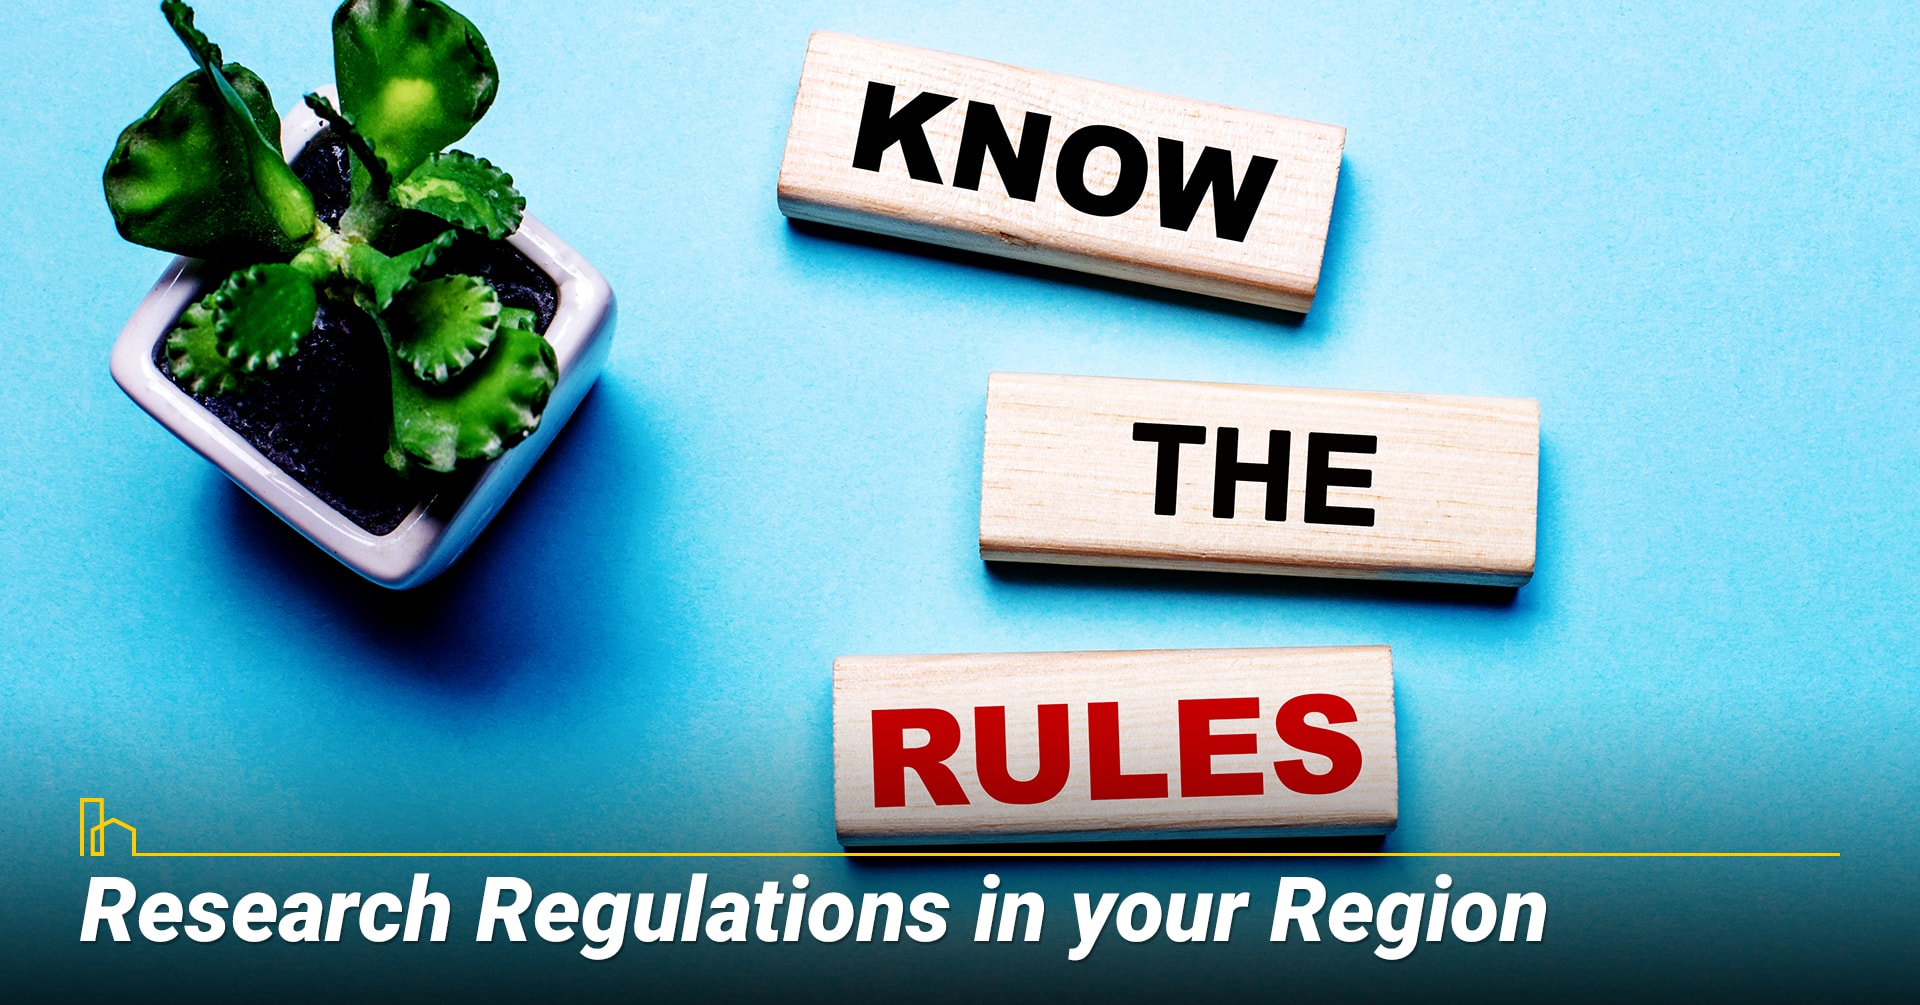 Research Regulations in your Region, learn about local laws